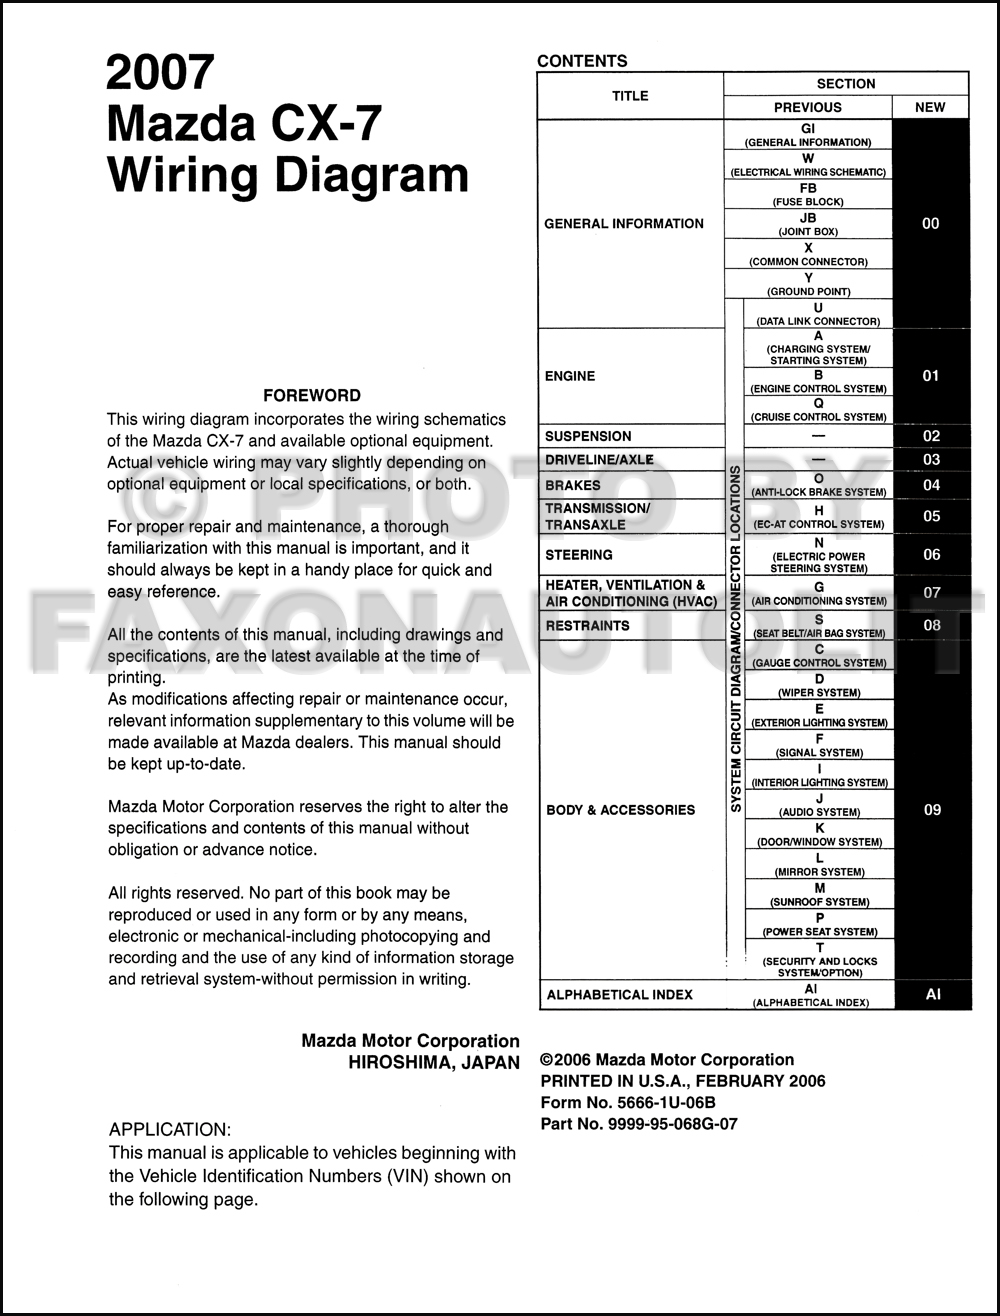 2007 mazda cx7 fuse box diagram wiring diagram tutorial2007 cx7 fuse diagram wiring diagram h122007 mazda cx 7 fuse diagram online wiring diagram 2007